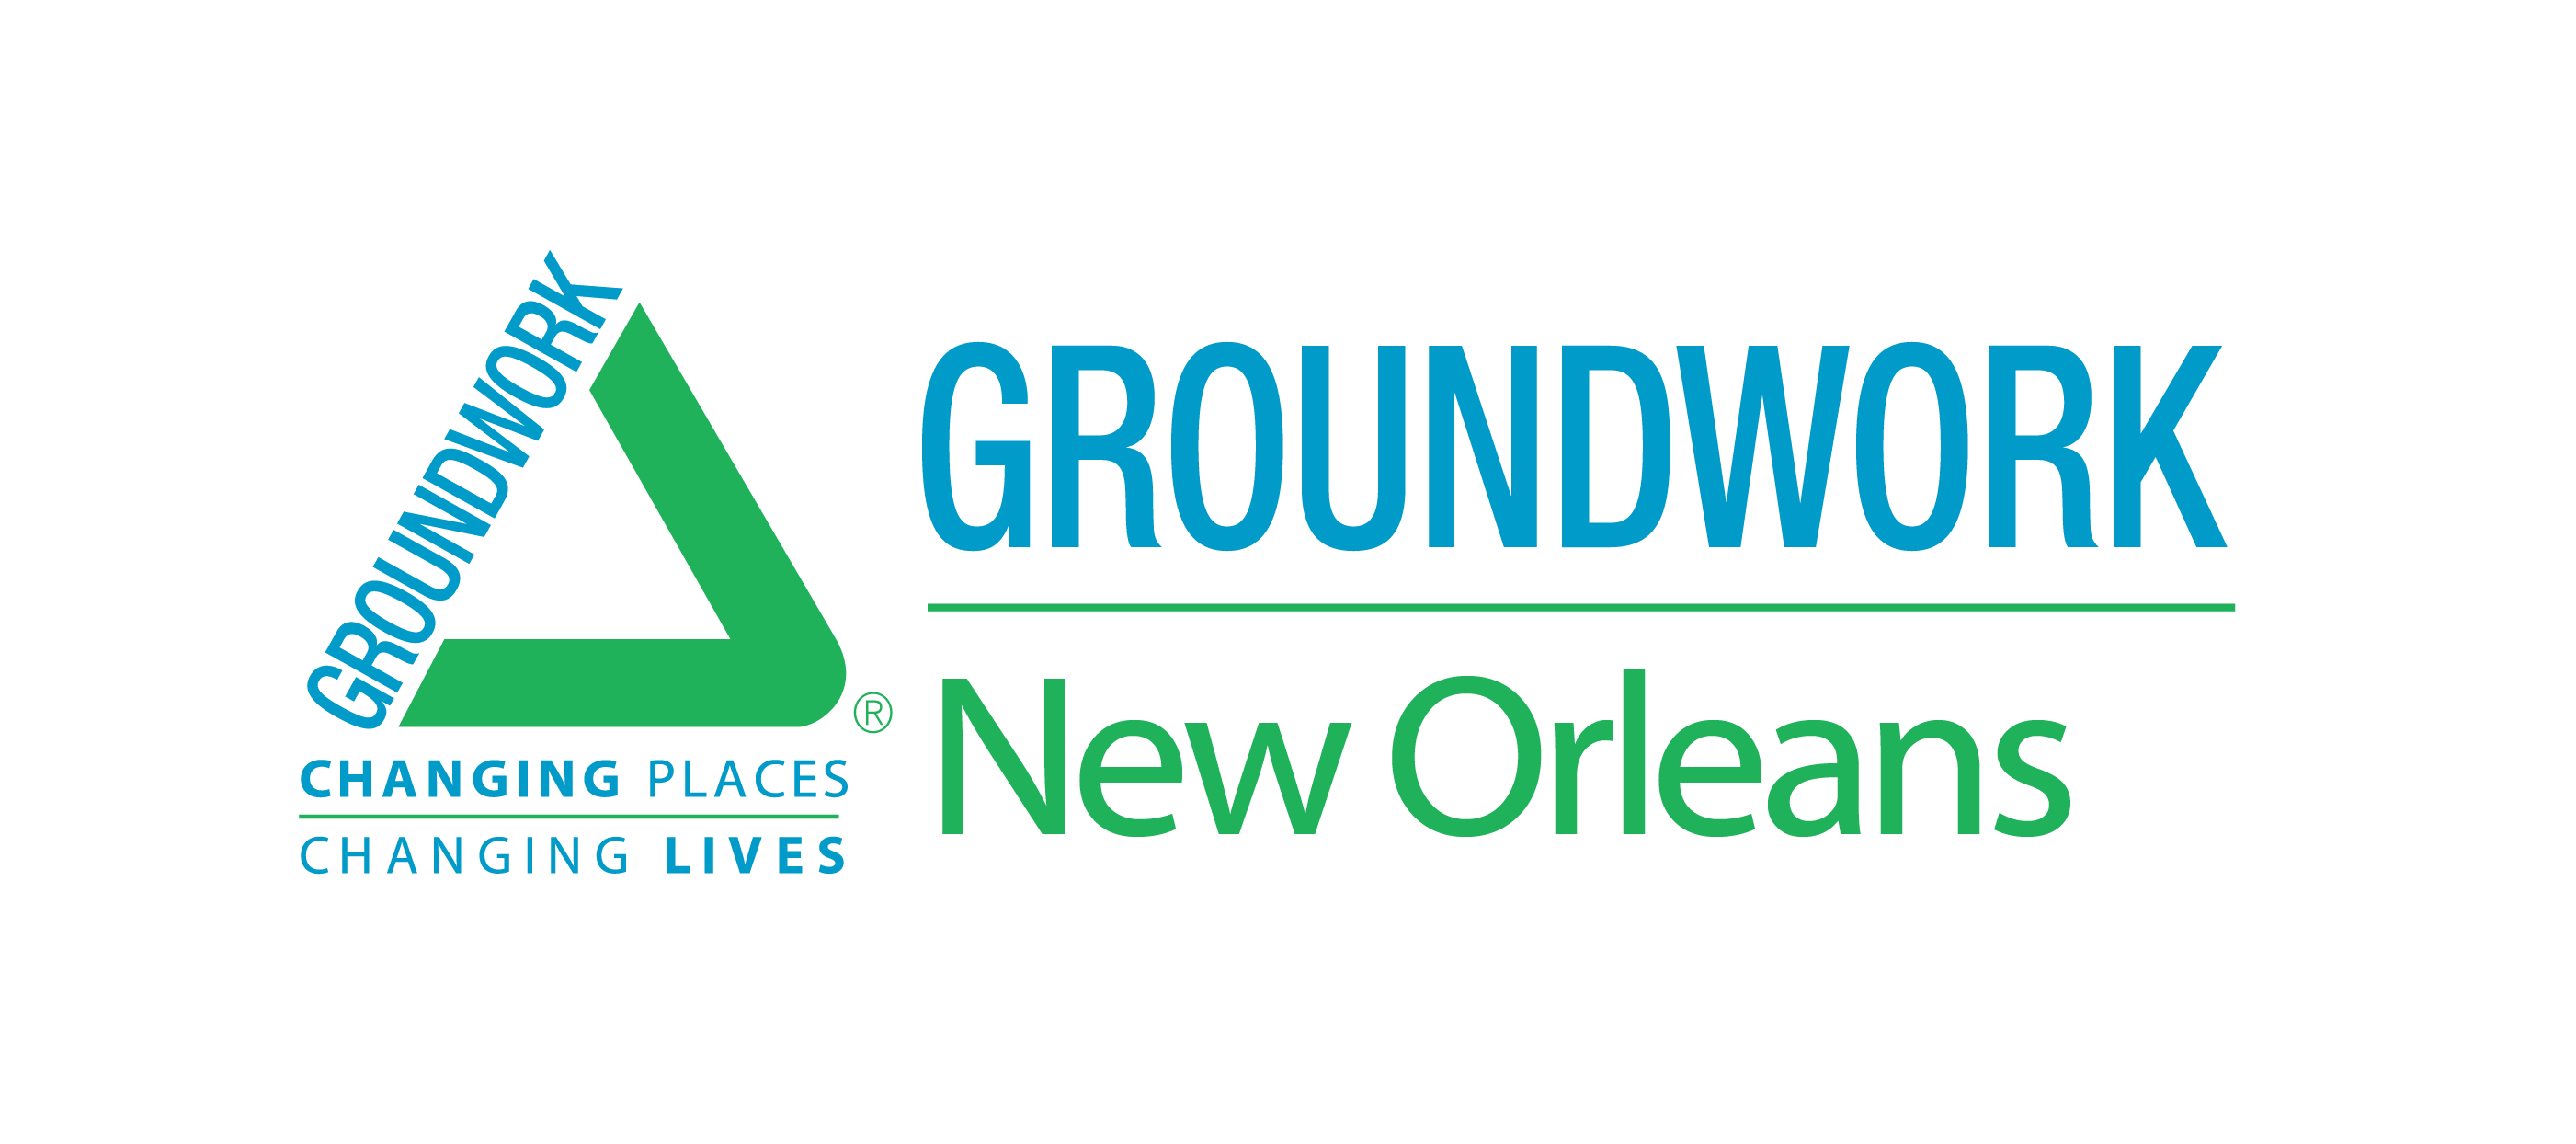 Groundwork New Orleans